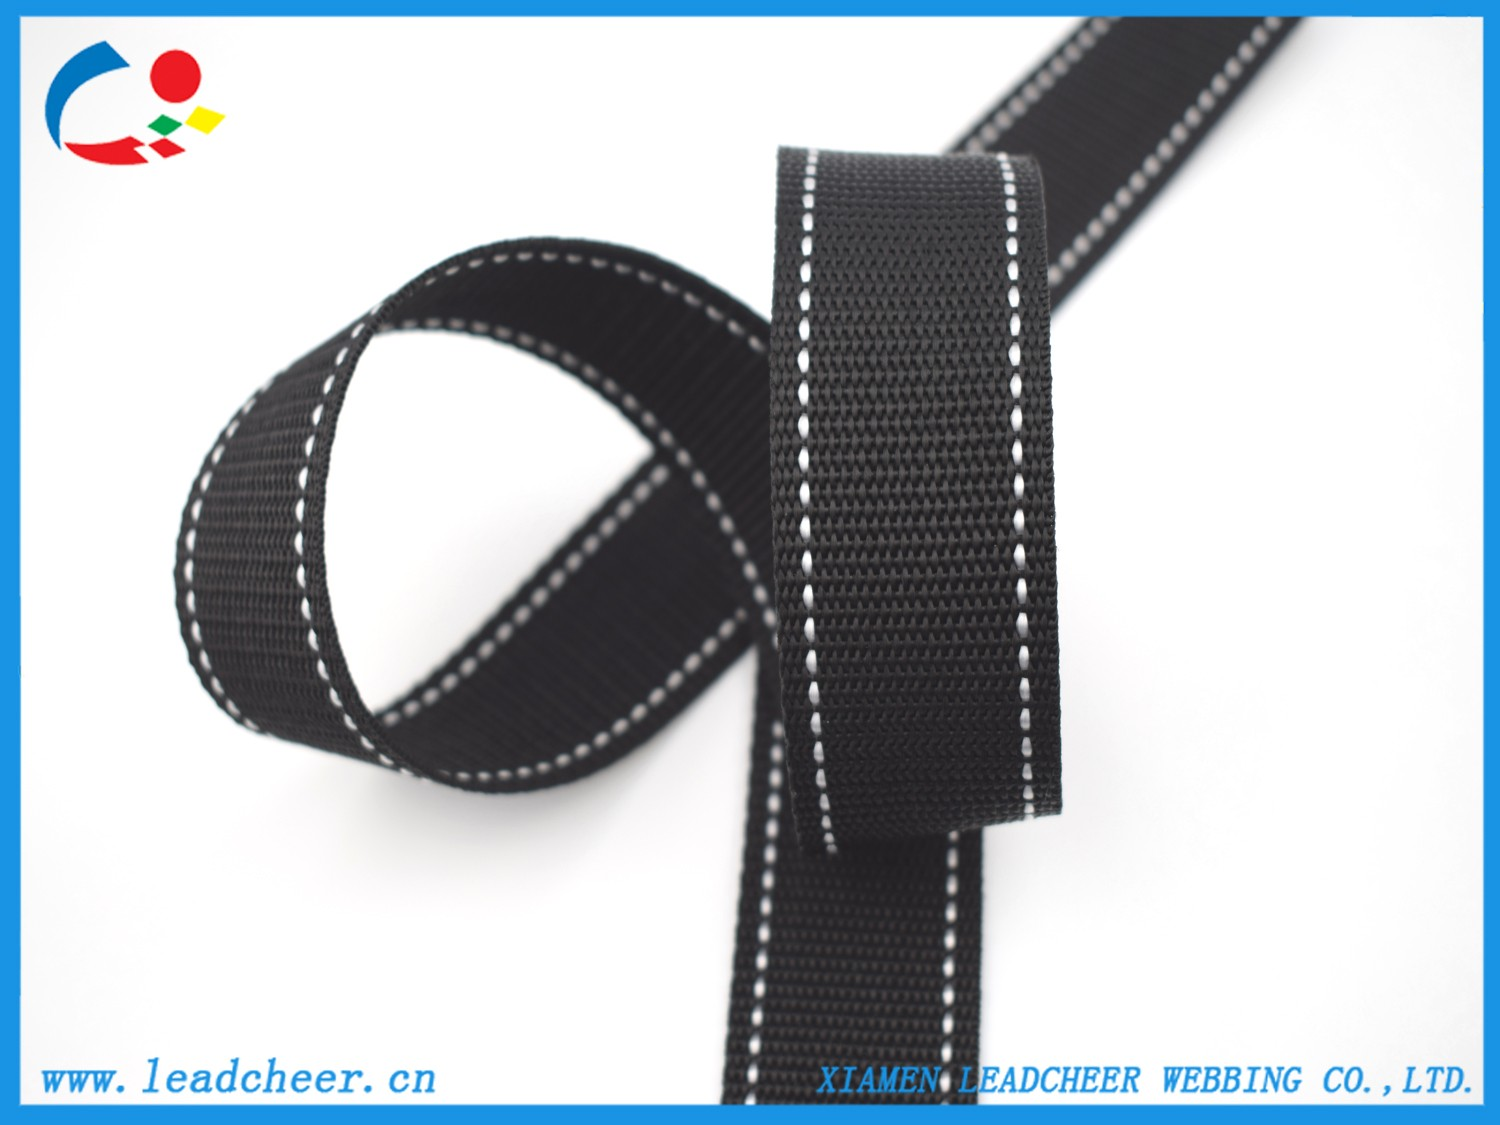 High quality High Strength PP Webbing Strap for Outdoor Climbing Equipments Quotes,China High Strength PP Webbing Strap for Outdoor Climbing Equipments Factory,High Strength PP Webbing Strap for Outdoor Climbing Equipments Purchasing